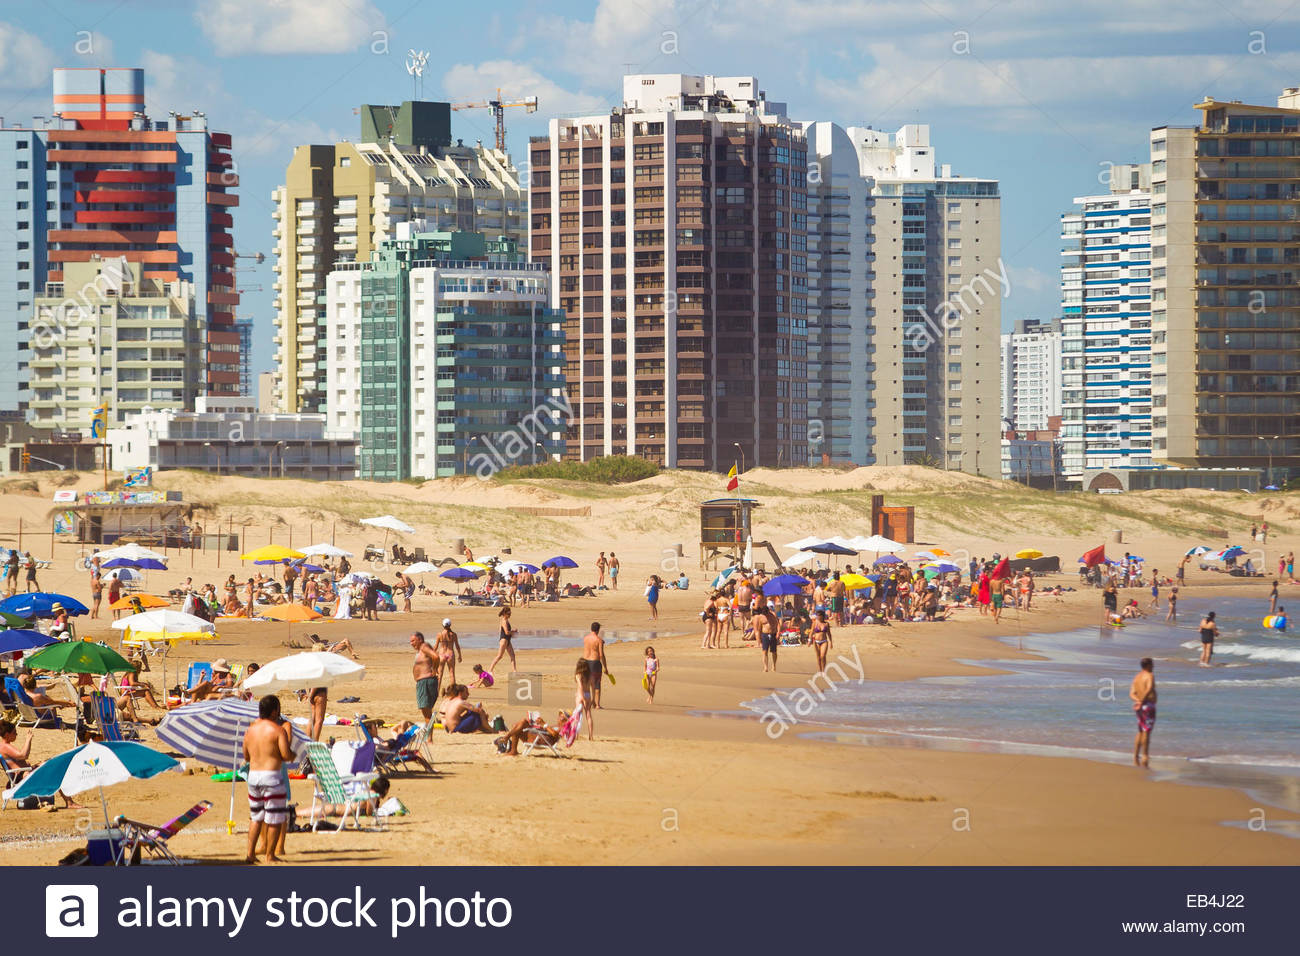 Sunbathers and swimmers enjoying a hot day on a city beach on the Atlantic coast. - Stock Image